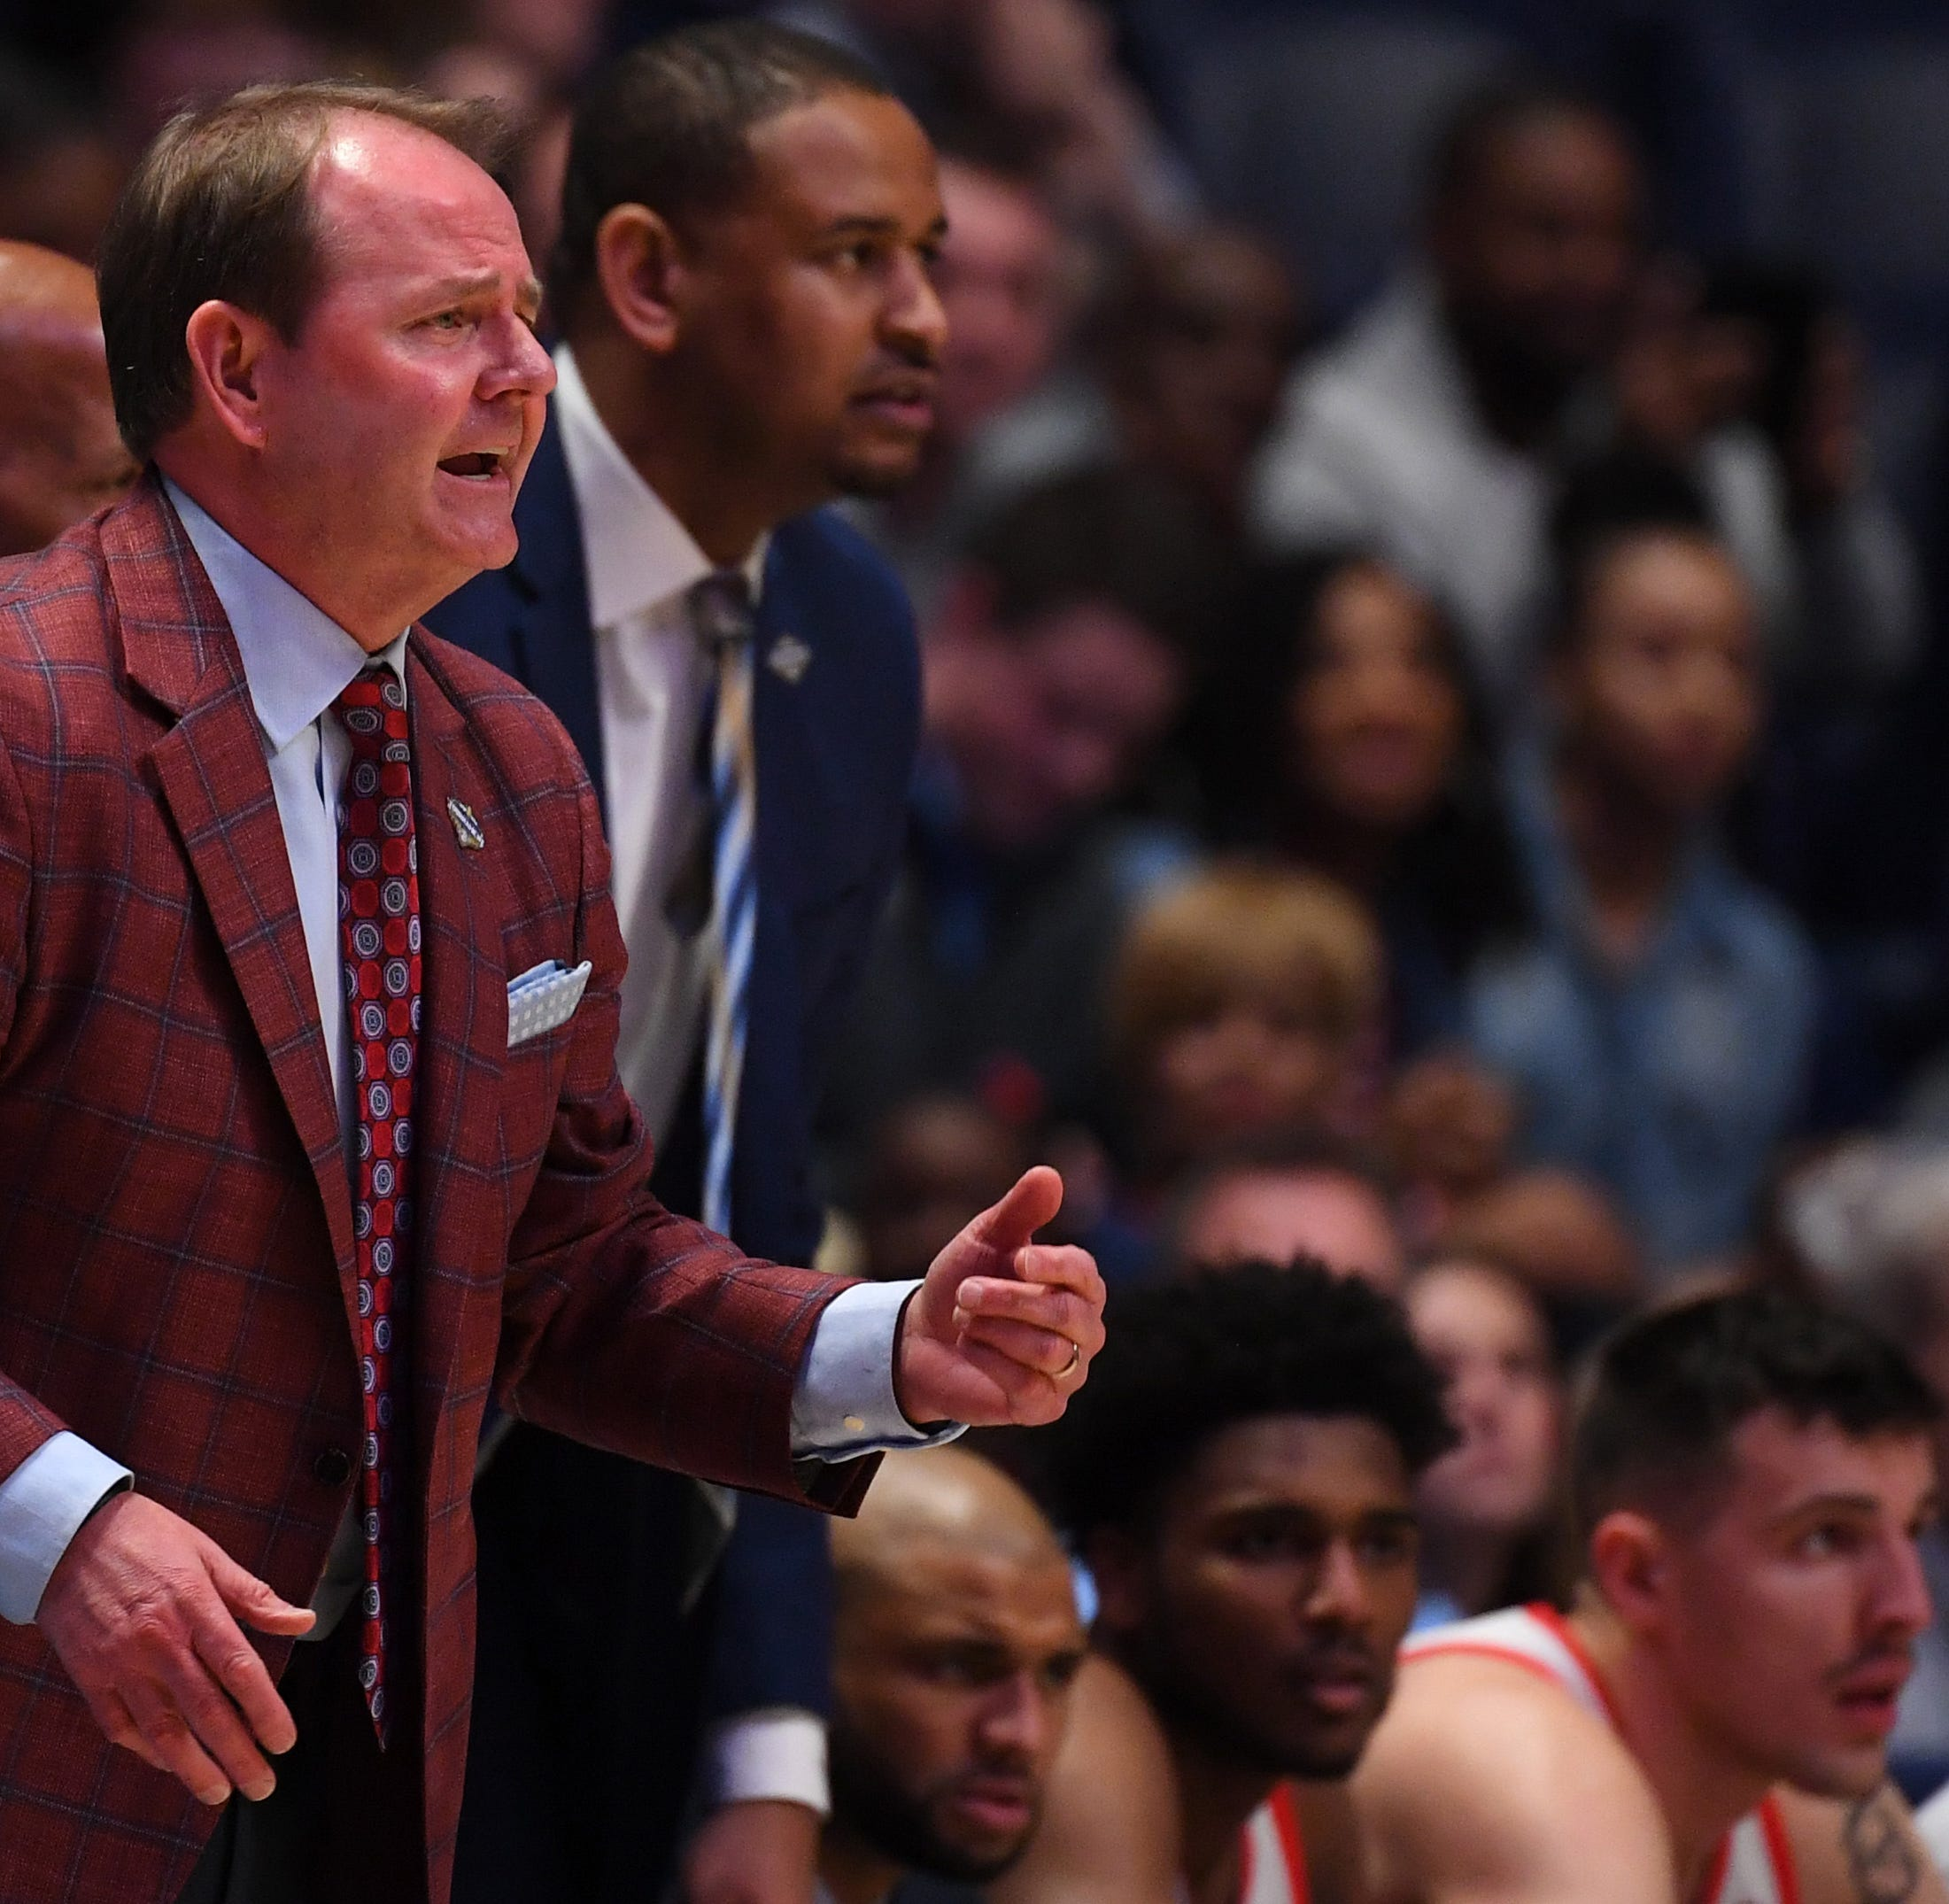 Here are the details of Ole Miss basketball coach Kermit Davis' contract extension